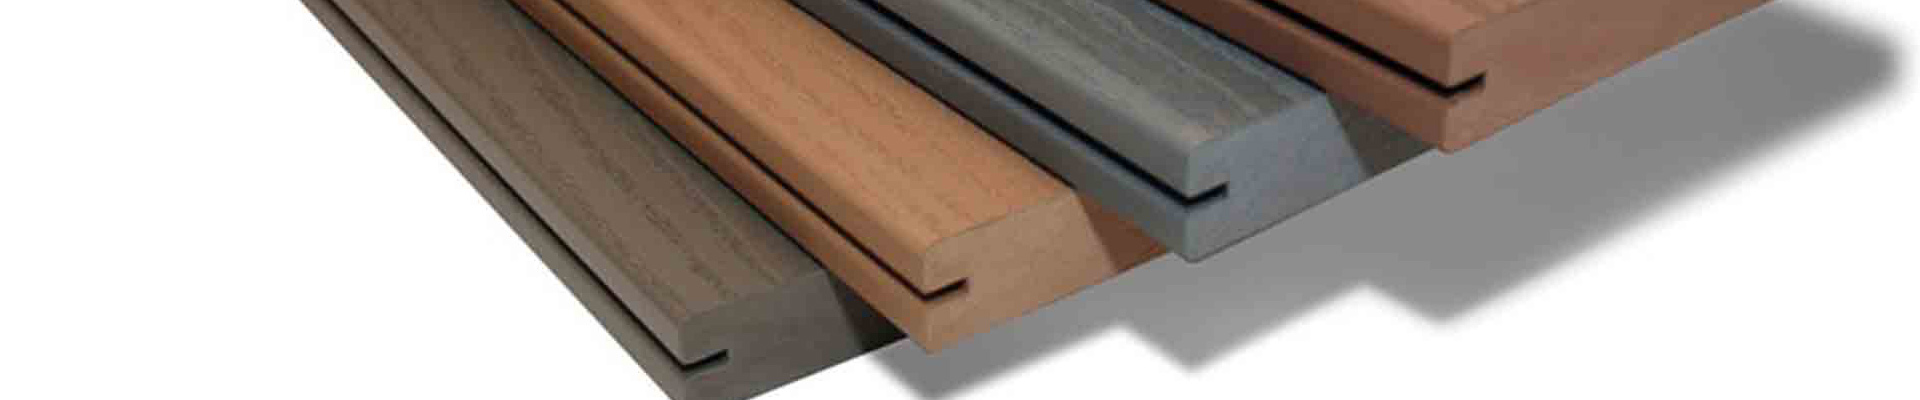 Composite Wood Evaluation and Testing